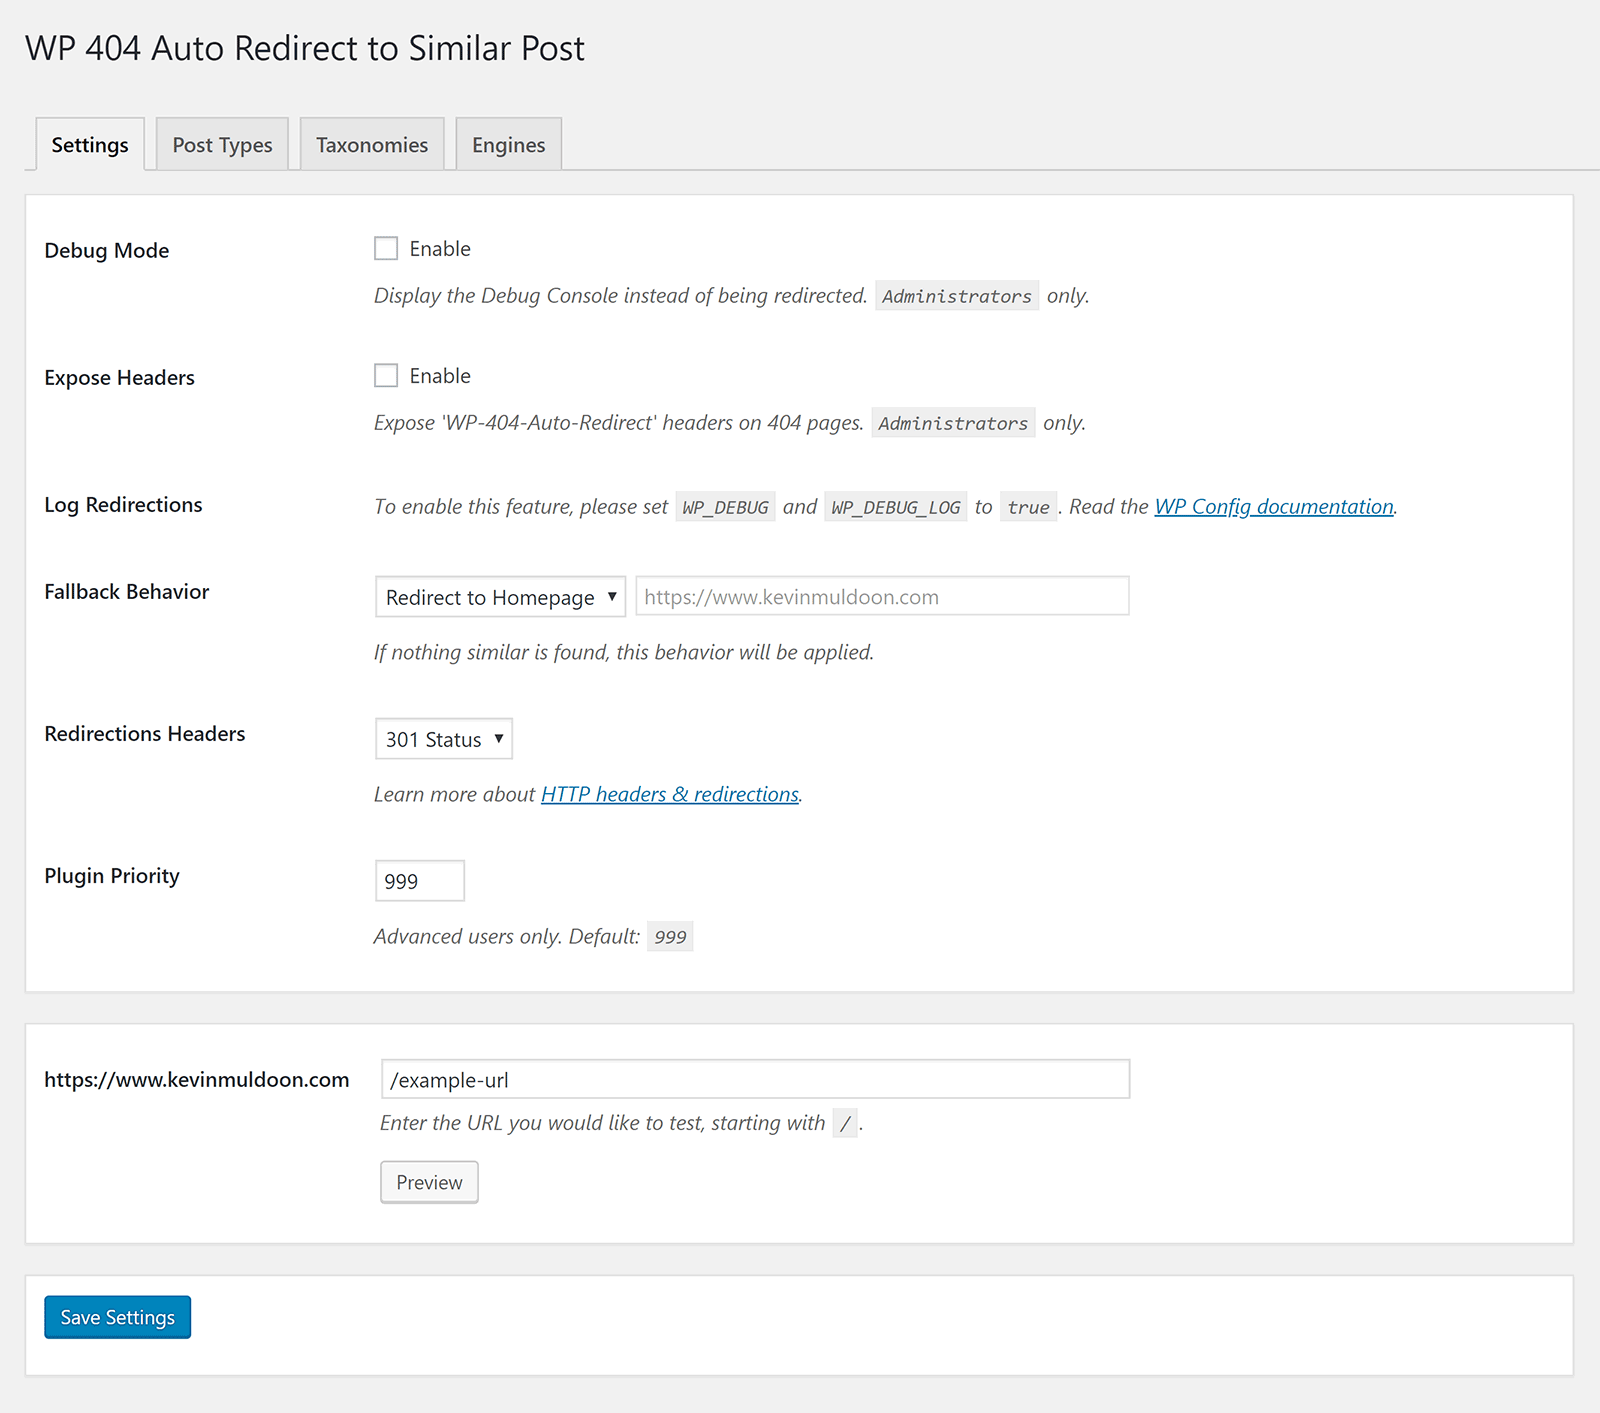 Settings for WP 404 Auto Redirect to Similar Post